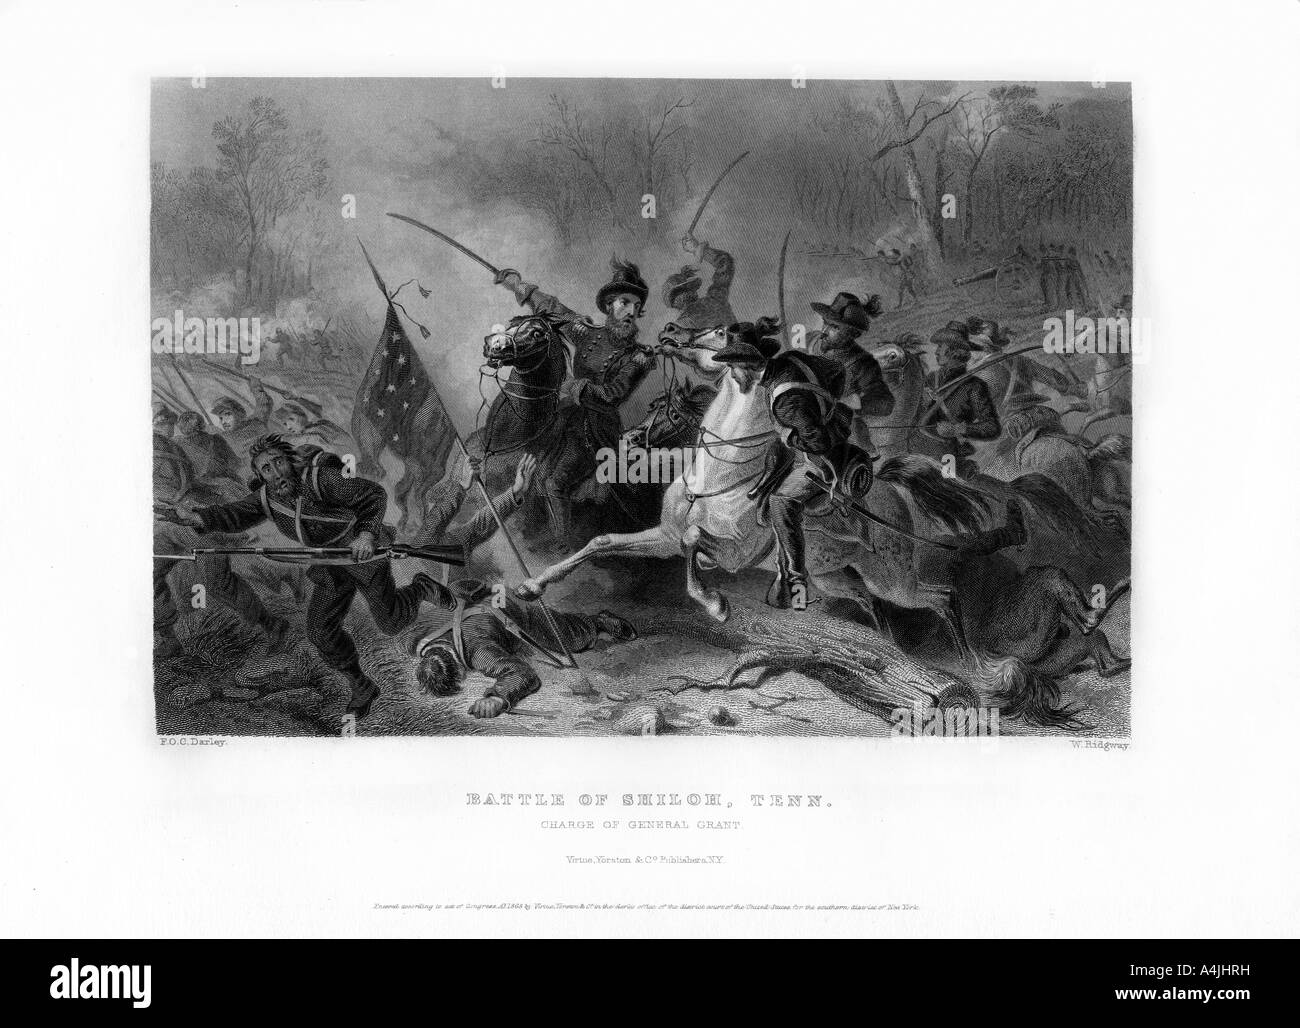 Charge of General Grant, Battle of Shiloh, Tennessee, April 1862, (1862-1867).Artist: W Ridgway - Stock Image